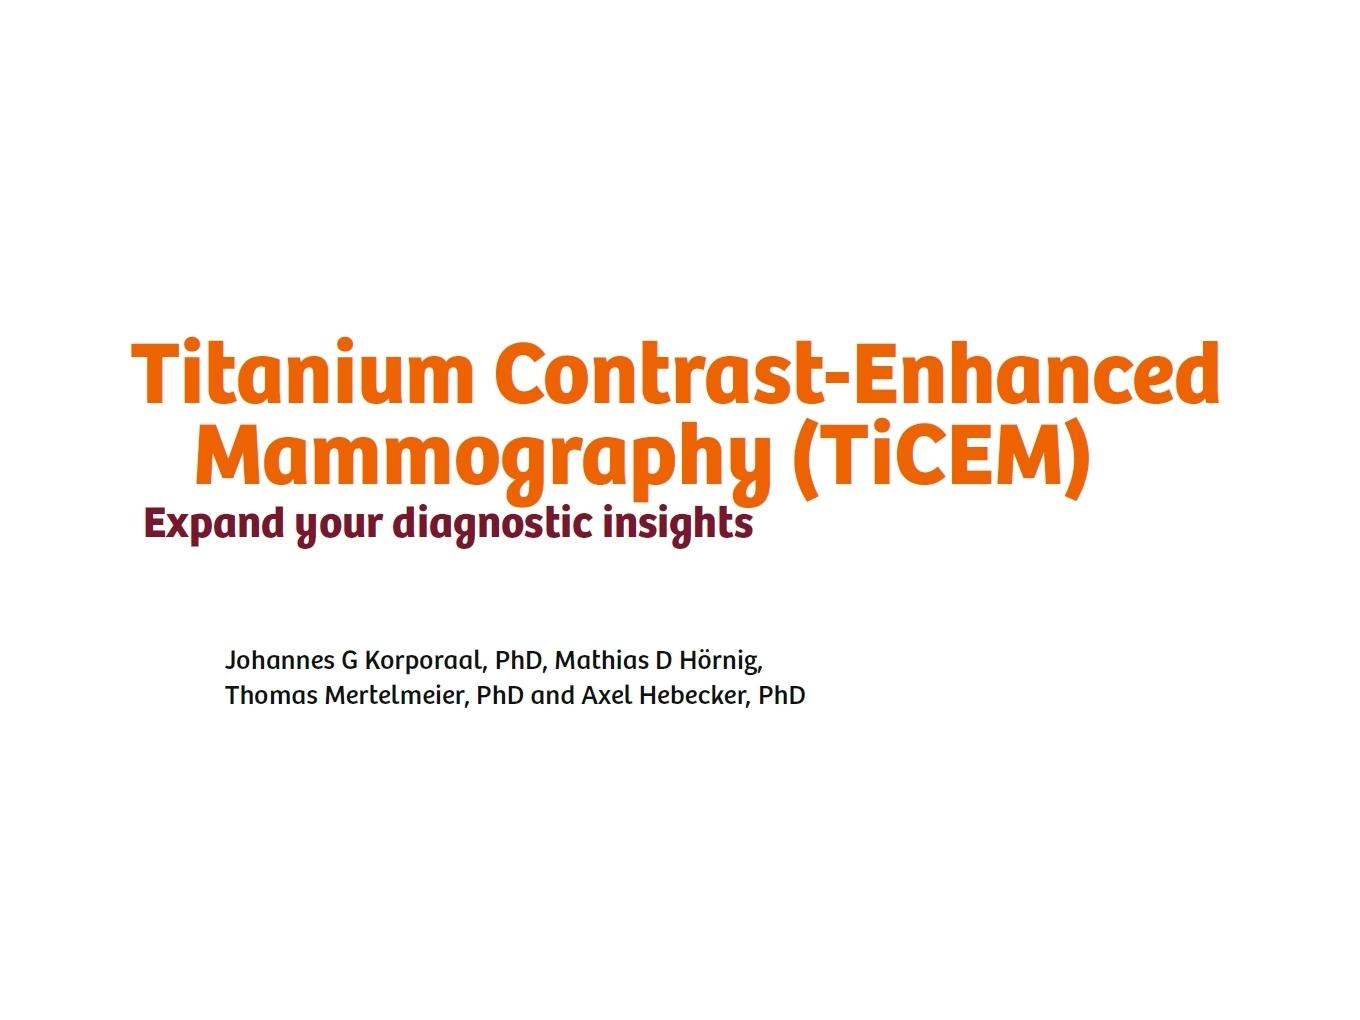 Titanium Contrast-Enhanced Mammography TiCEM